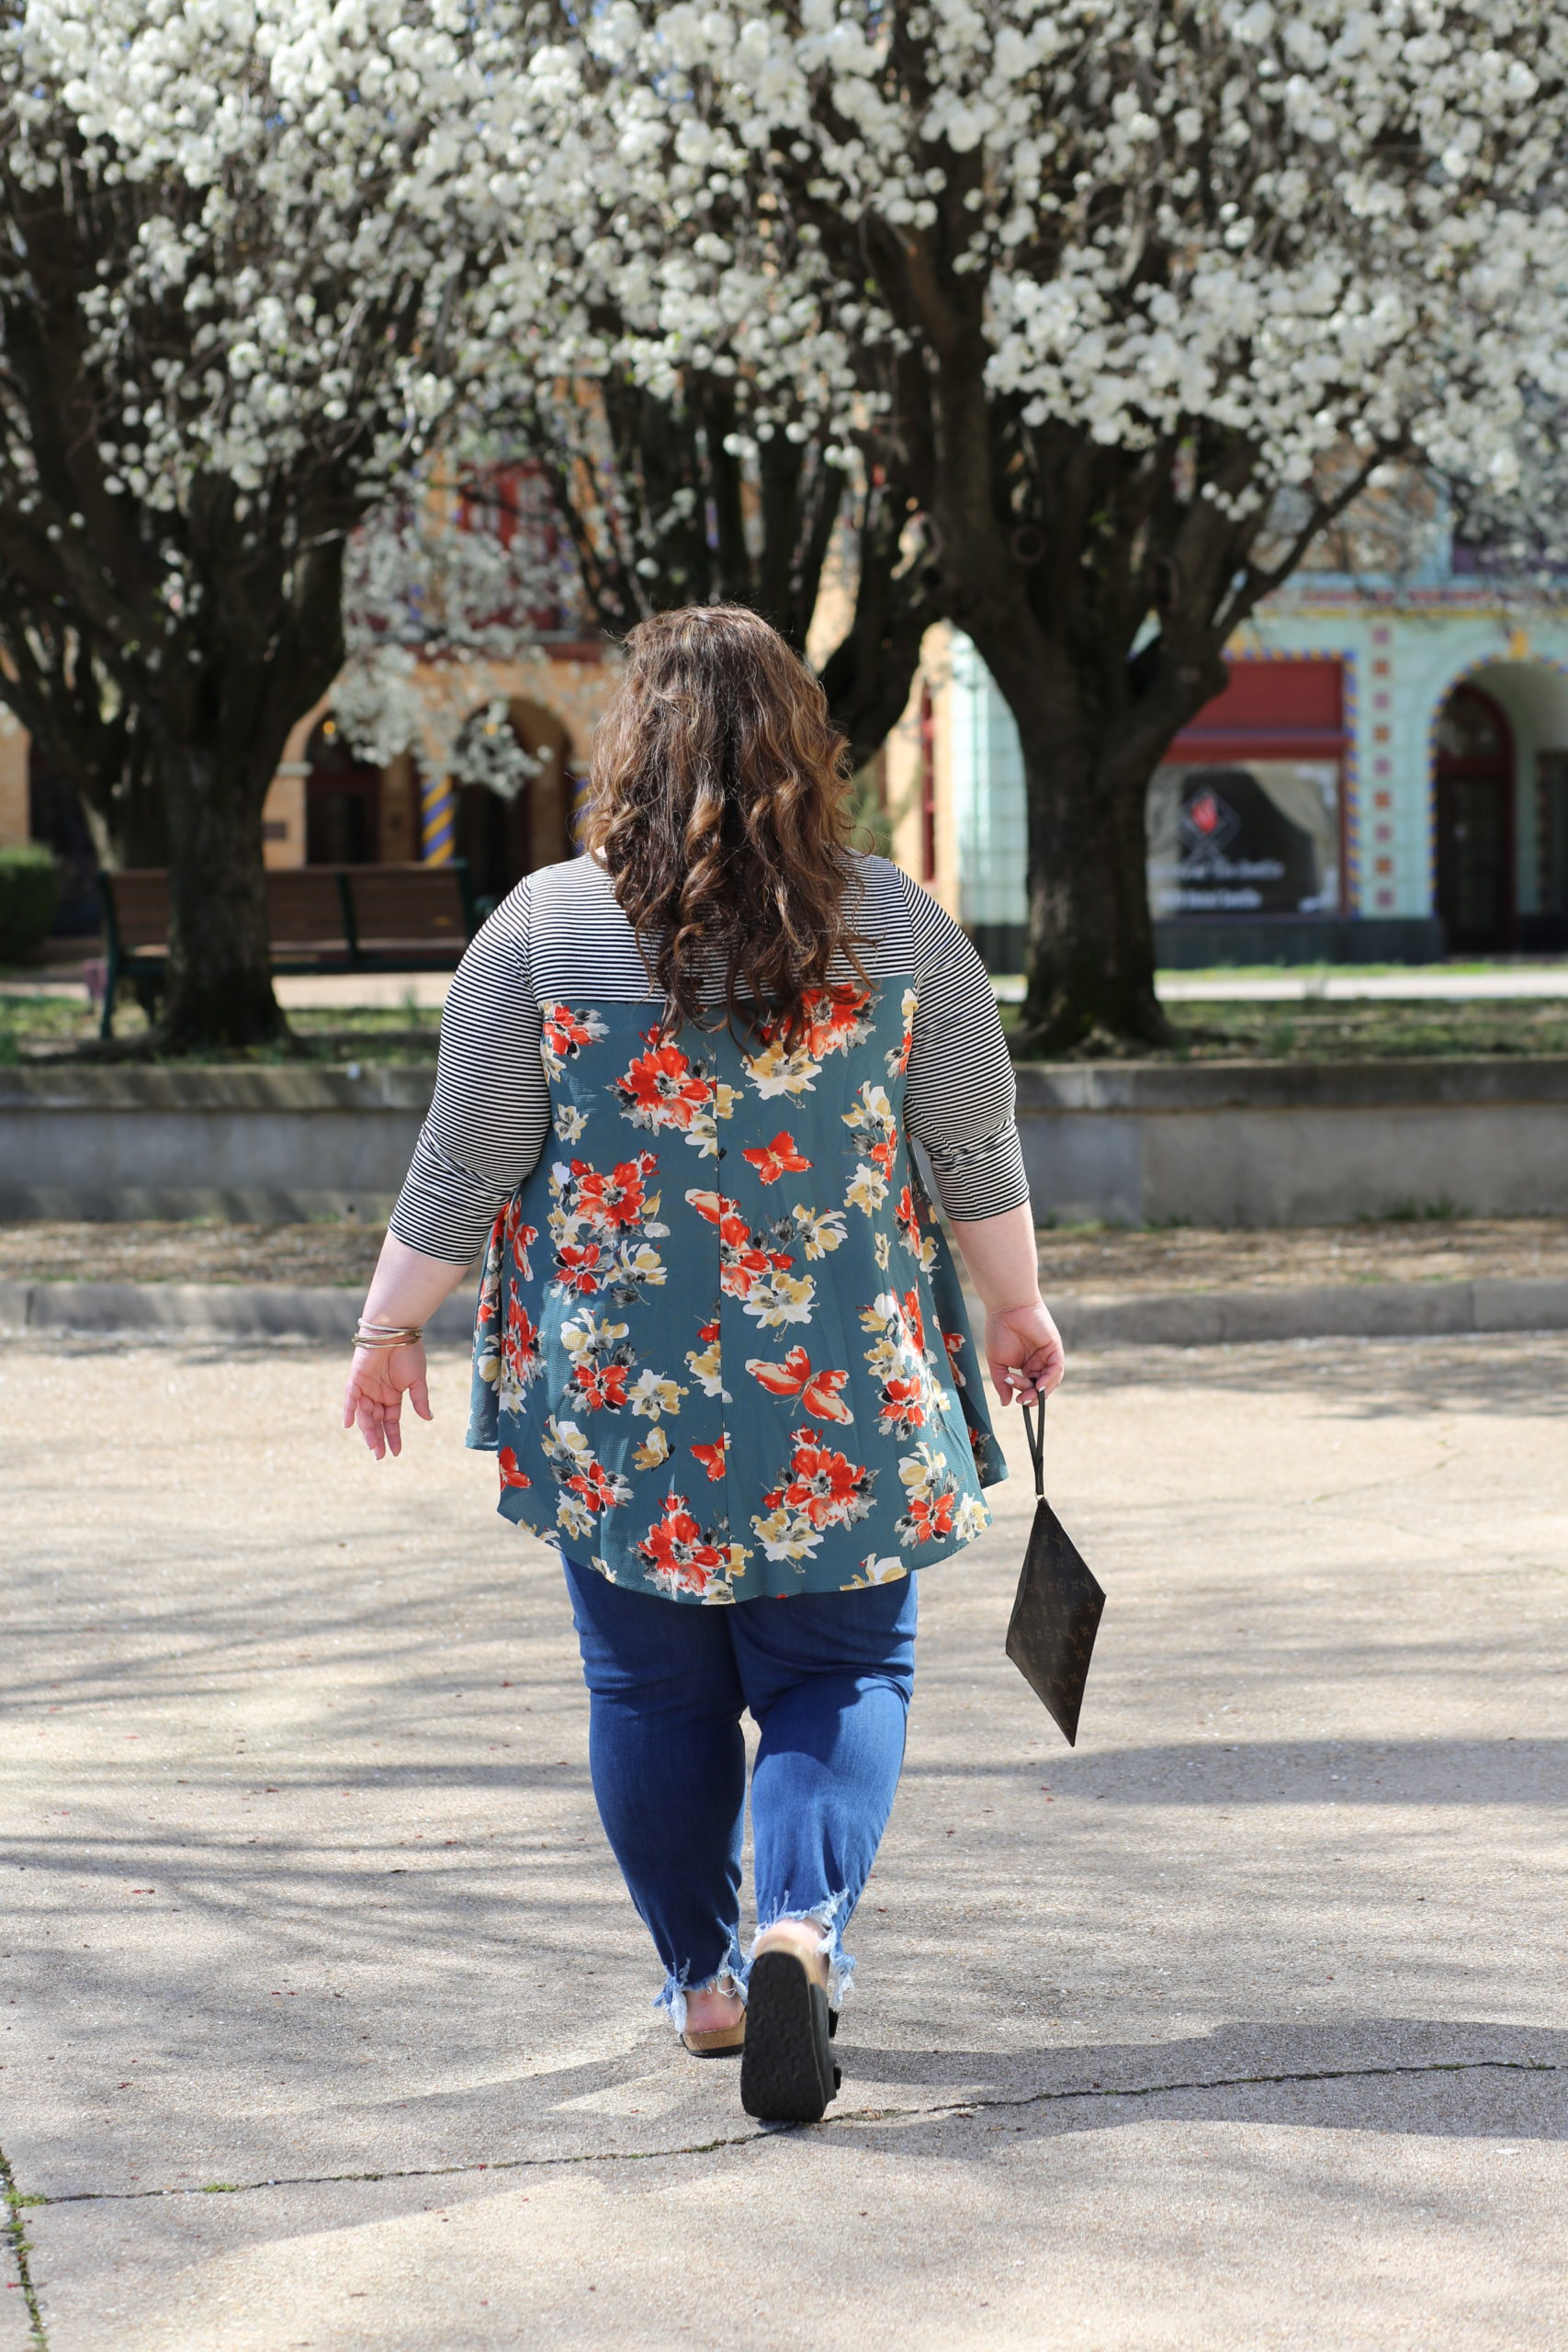 curvy boutique, the wandering willow, rebekaheliz, rebekahelizstyle, curvy style, plus size style, plus size blogger, spring style